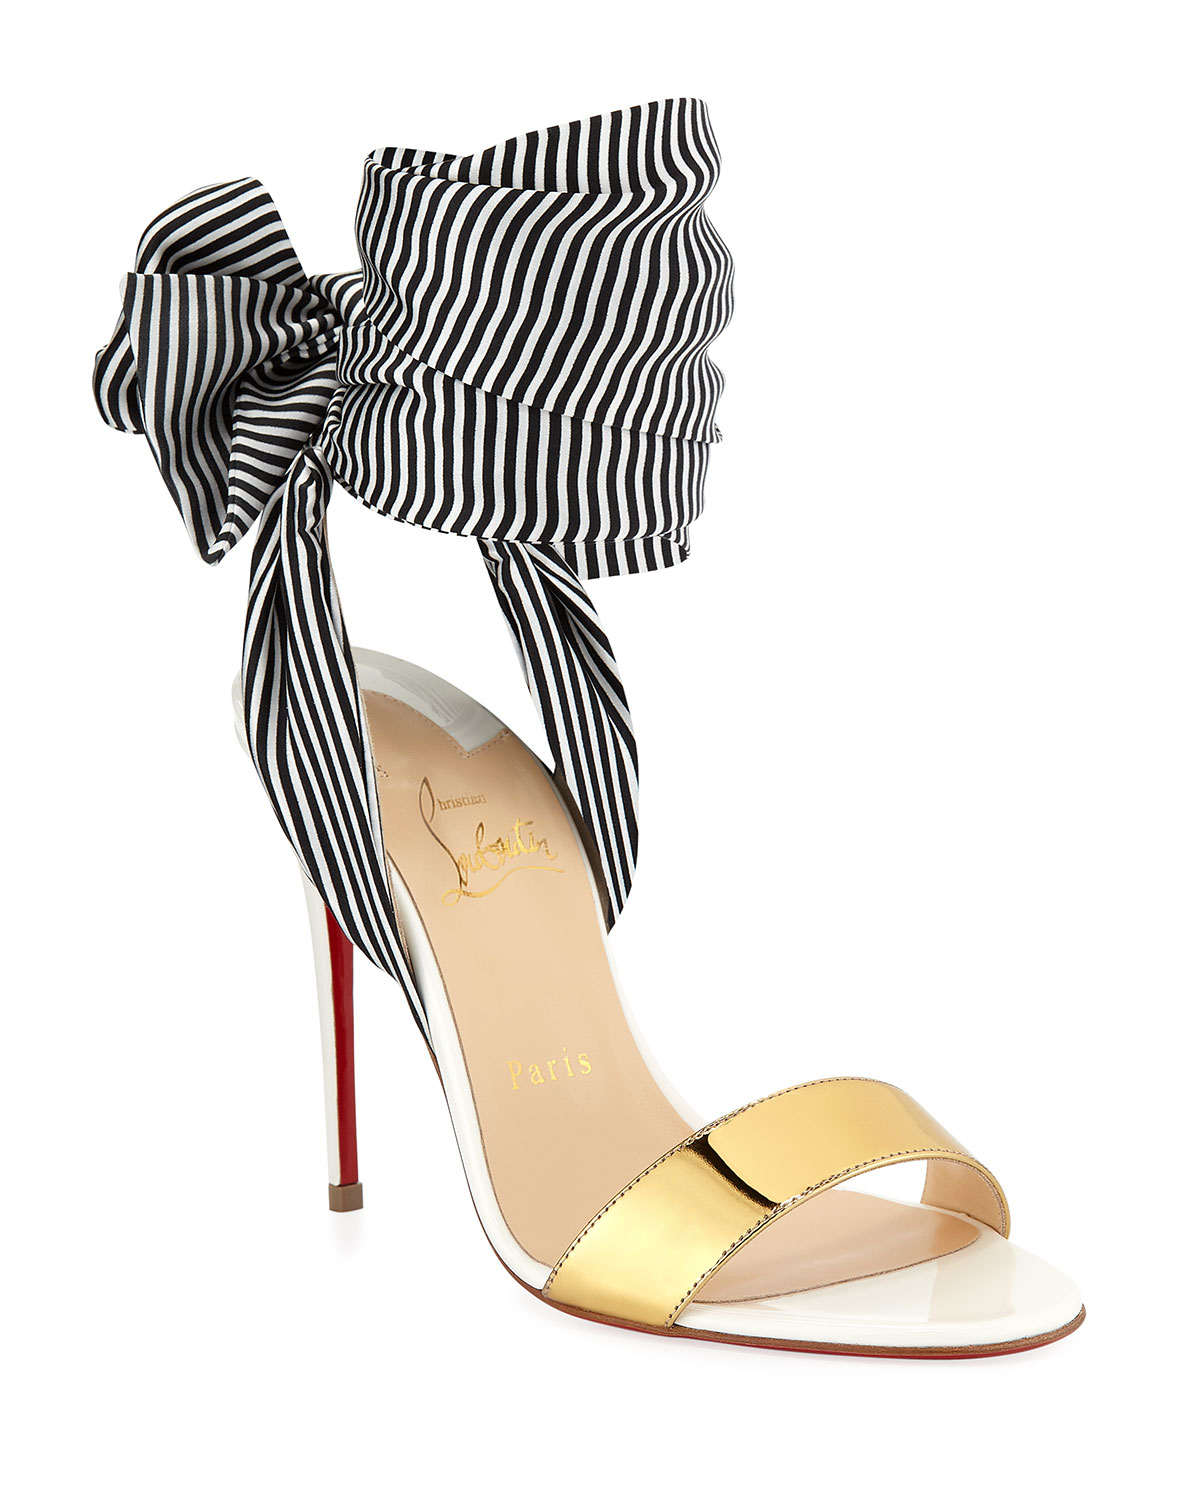 8e3025e4dc6 Christian Louboutin Sandale Du Desert Red Sole Sandals